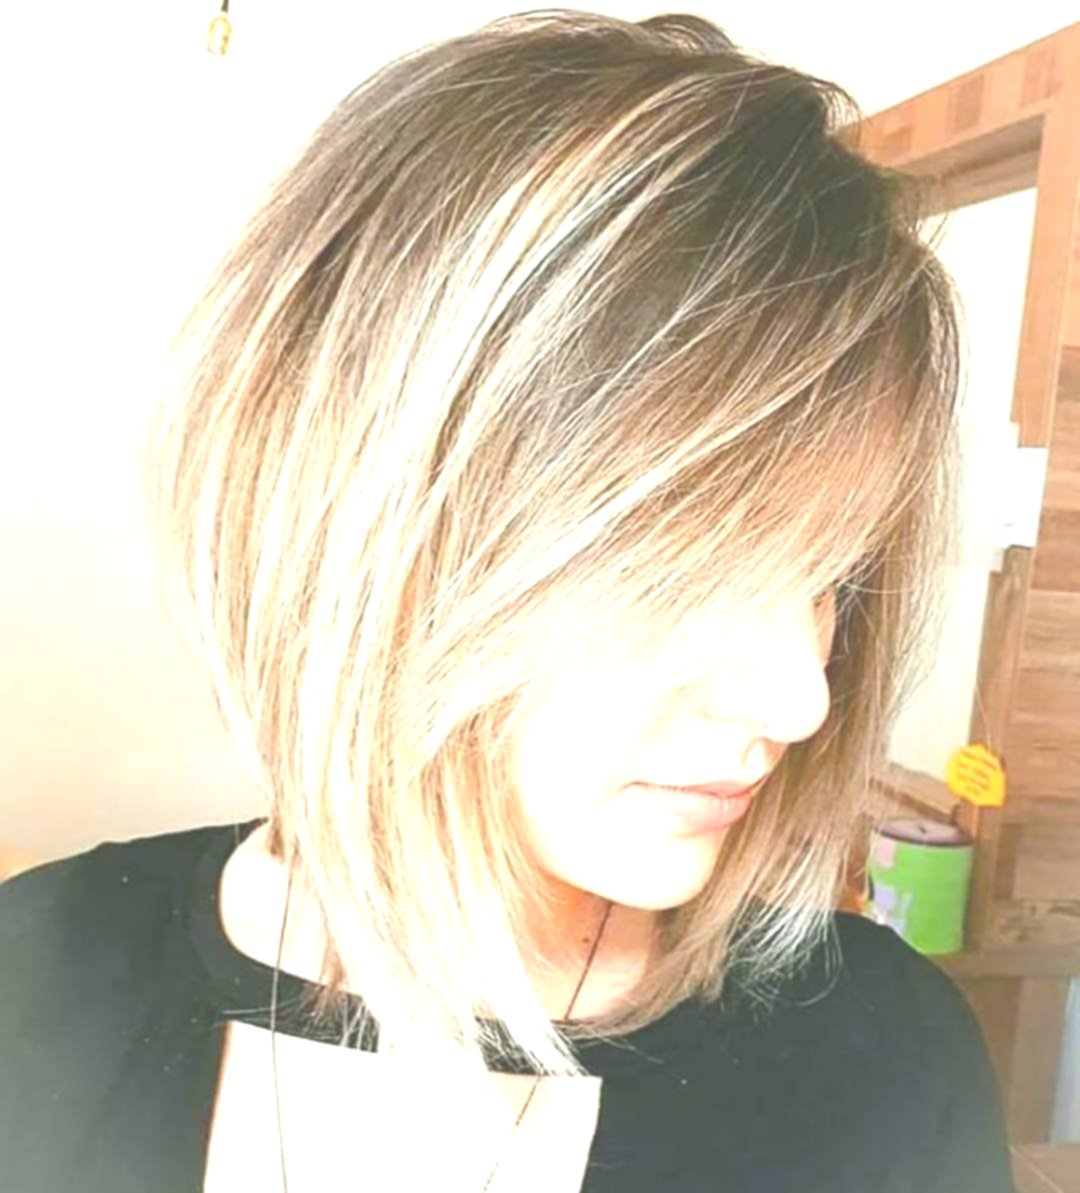 10 Hallo-Fashion Short Haircut für Dickes Haar Ideen & Farboptionen